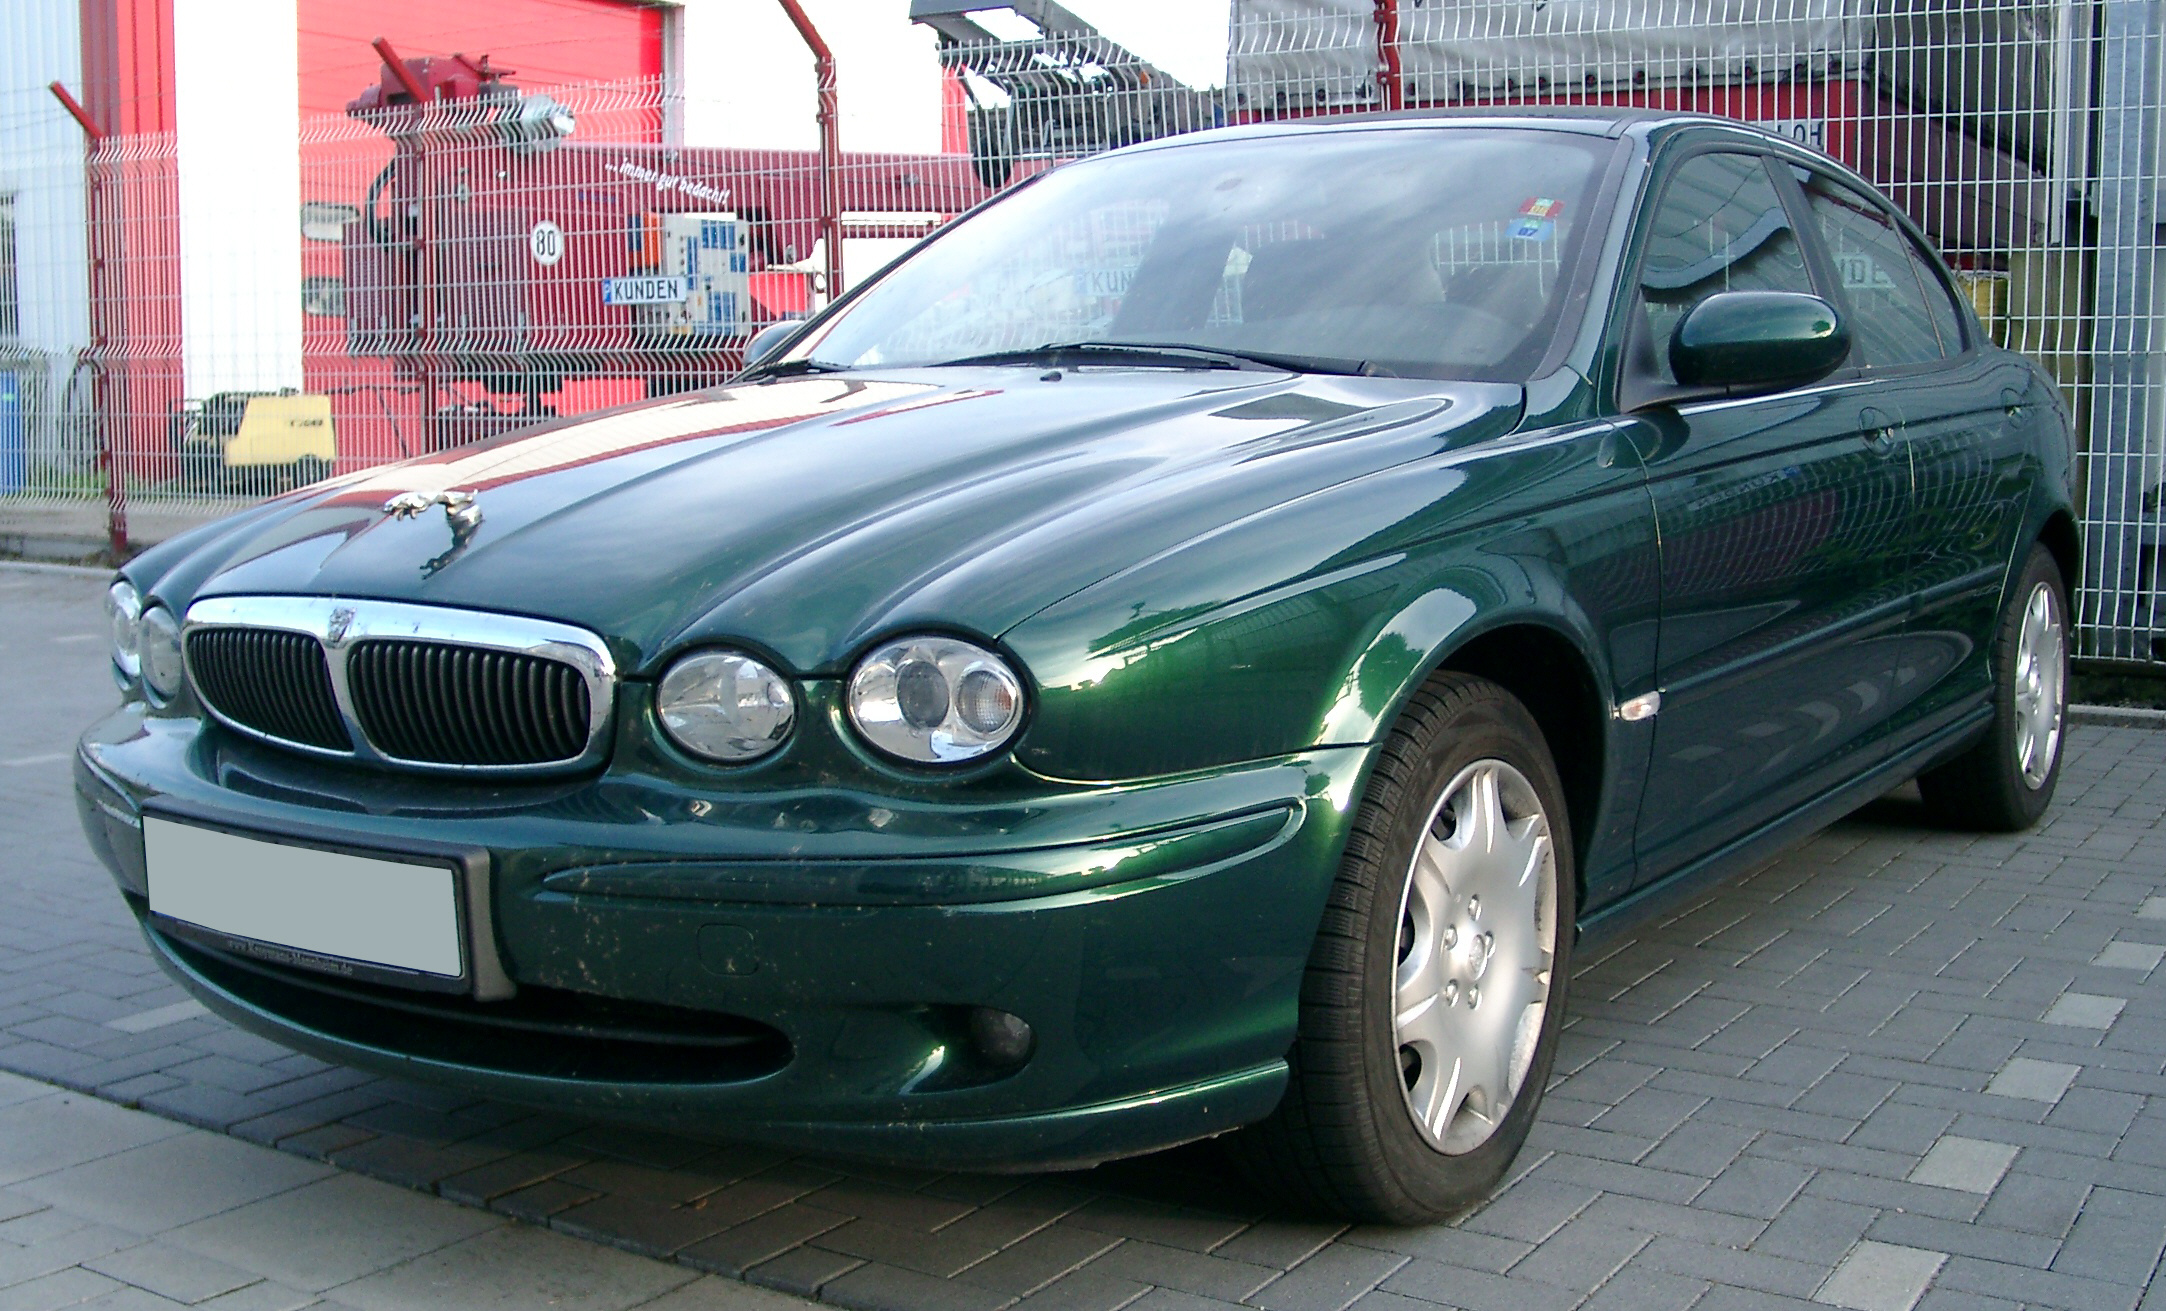 2007 jaguar x type information and photos momentcar. Black Bedroom Furniture Sets. Home Design Ideas